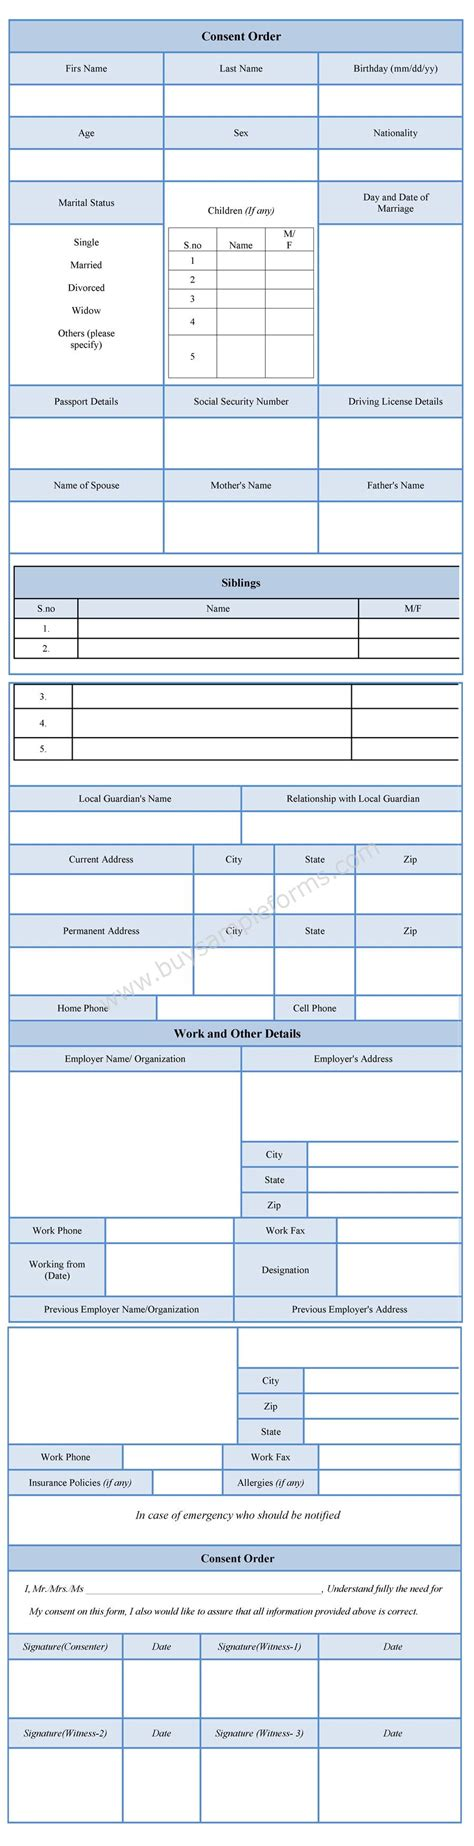 consent order form consent order form consent order form template